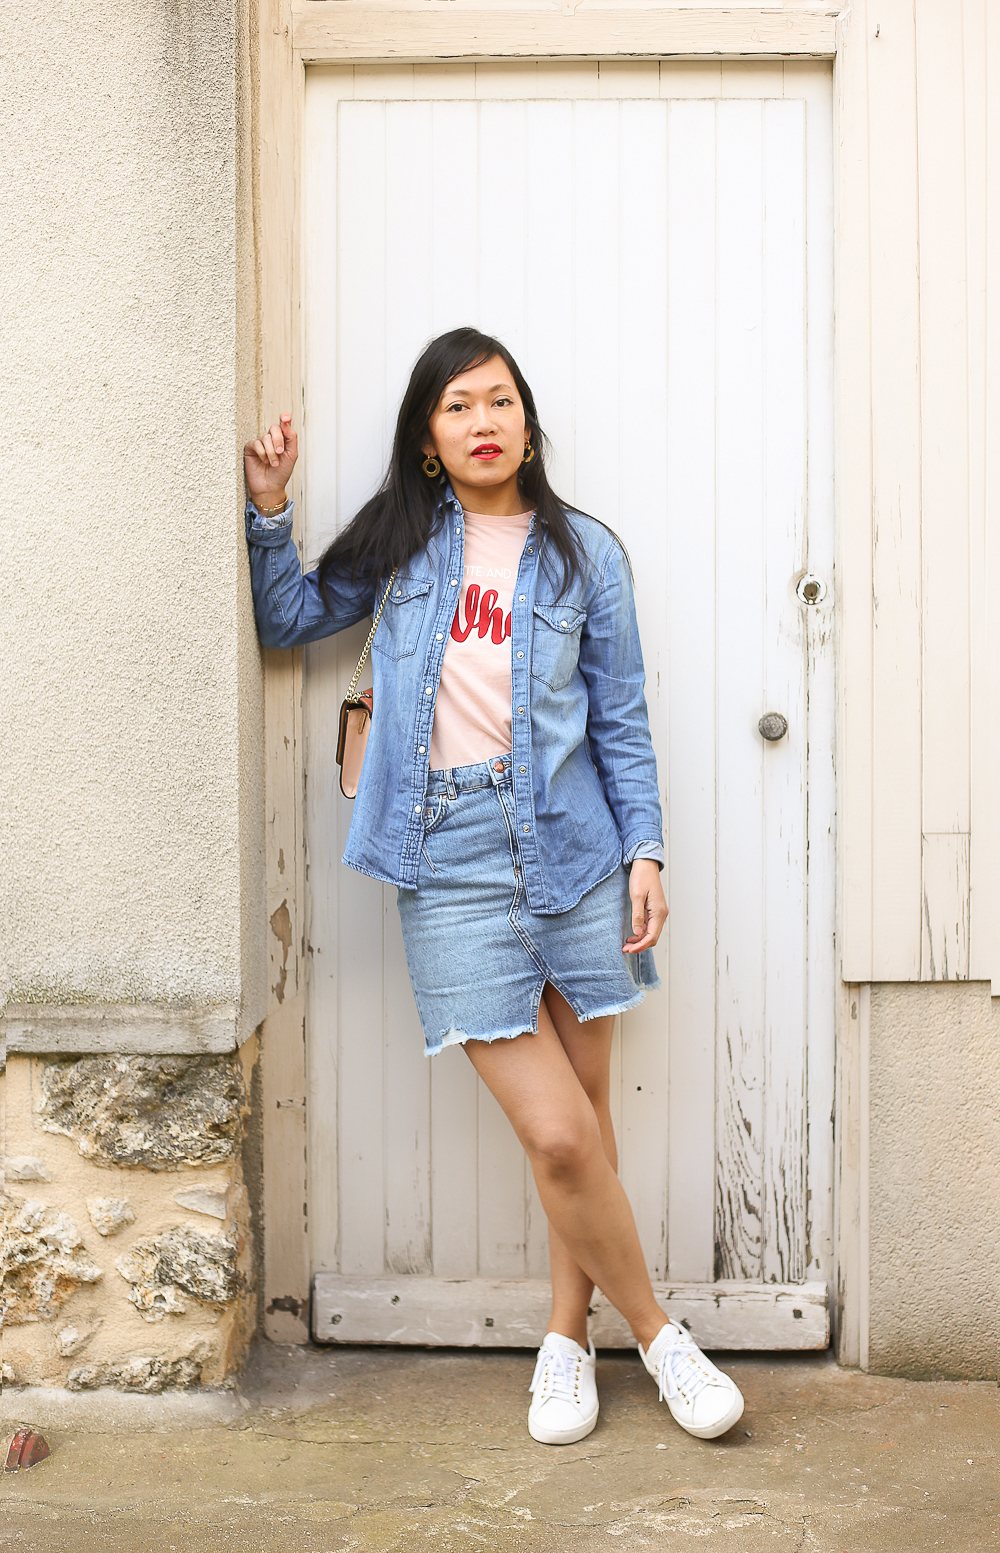 petite-and-so-what-look-jupe-jean-tee-shirt-petite-and-so-what-2BIS